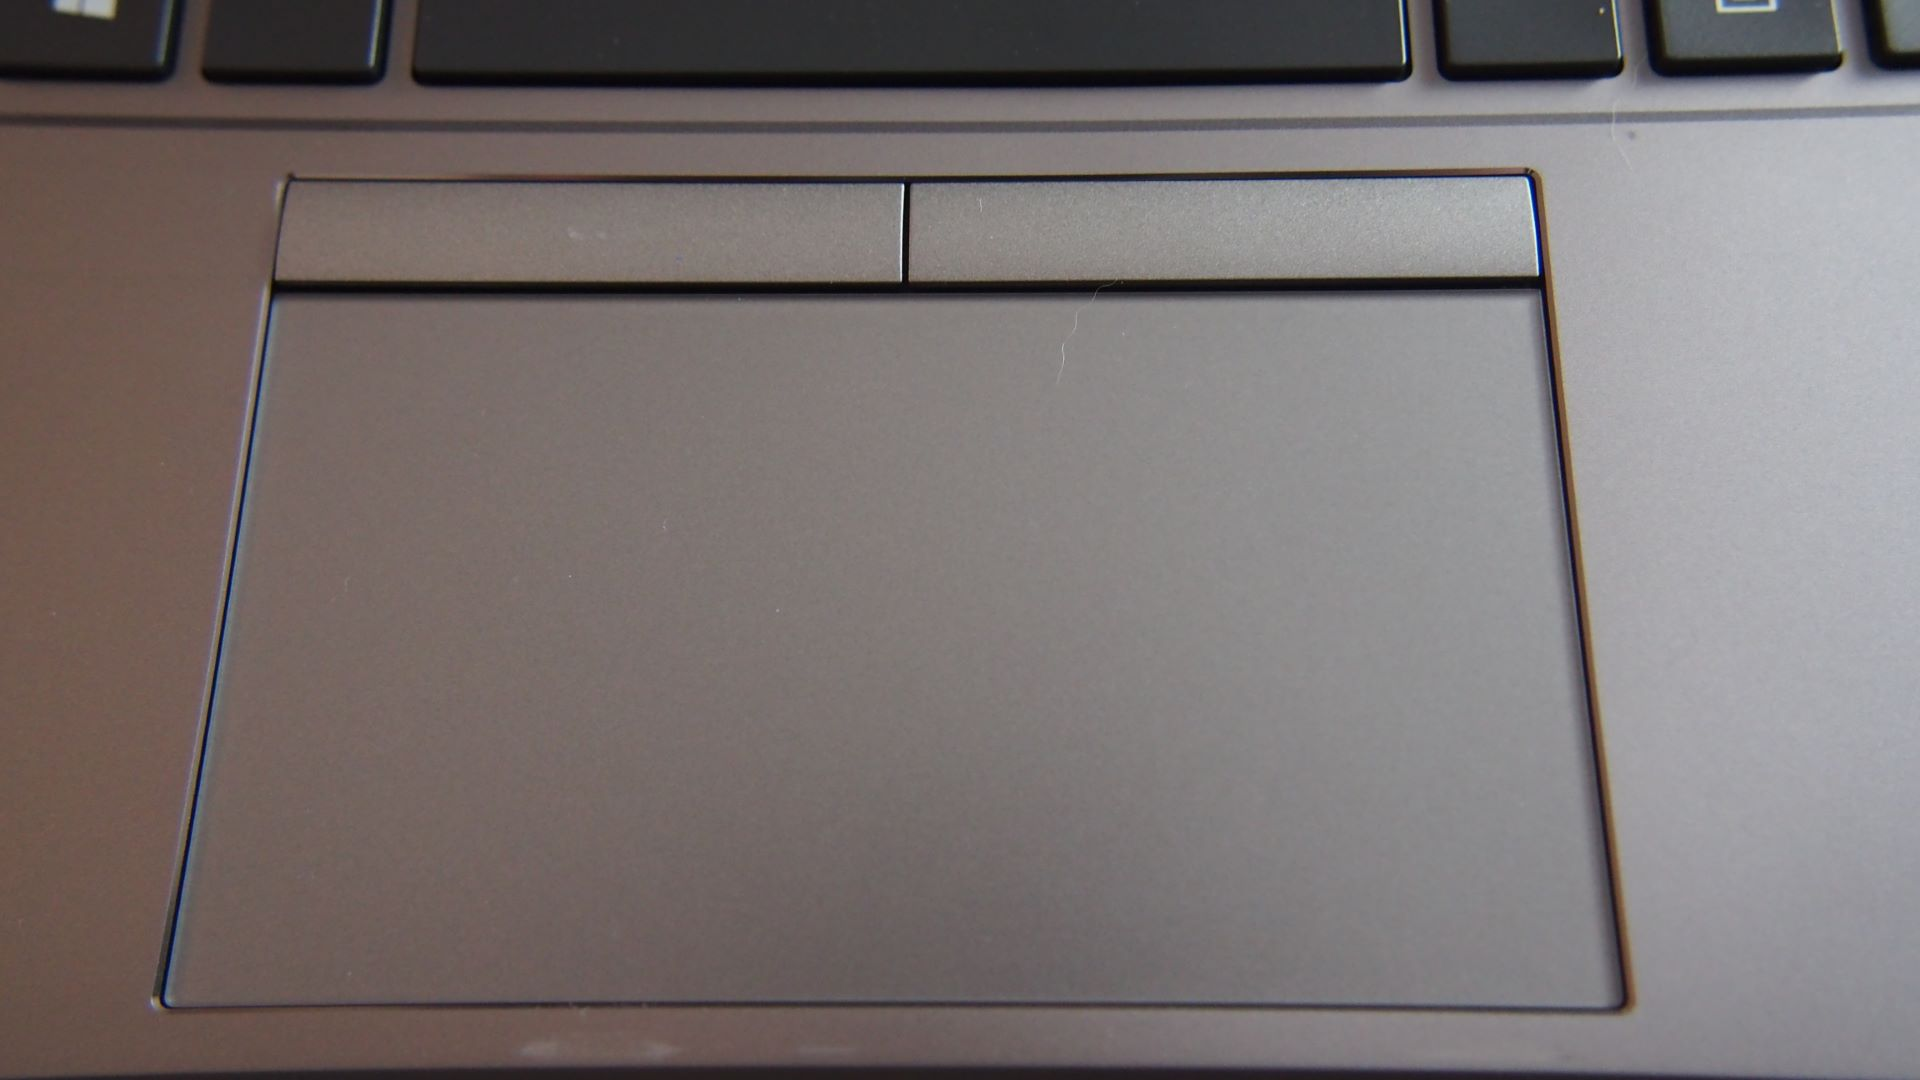 Tracking pad on HP Zbook Firefly 14